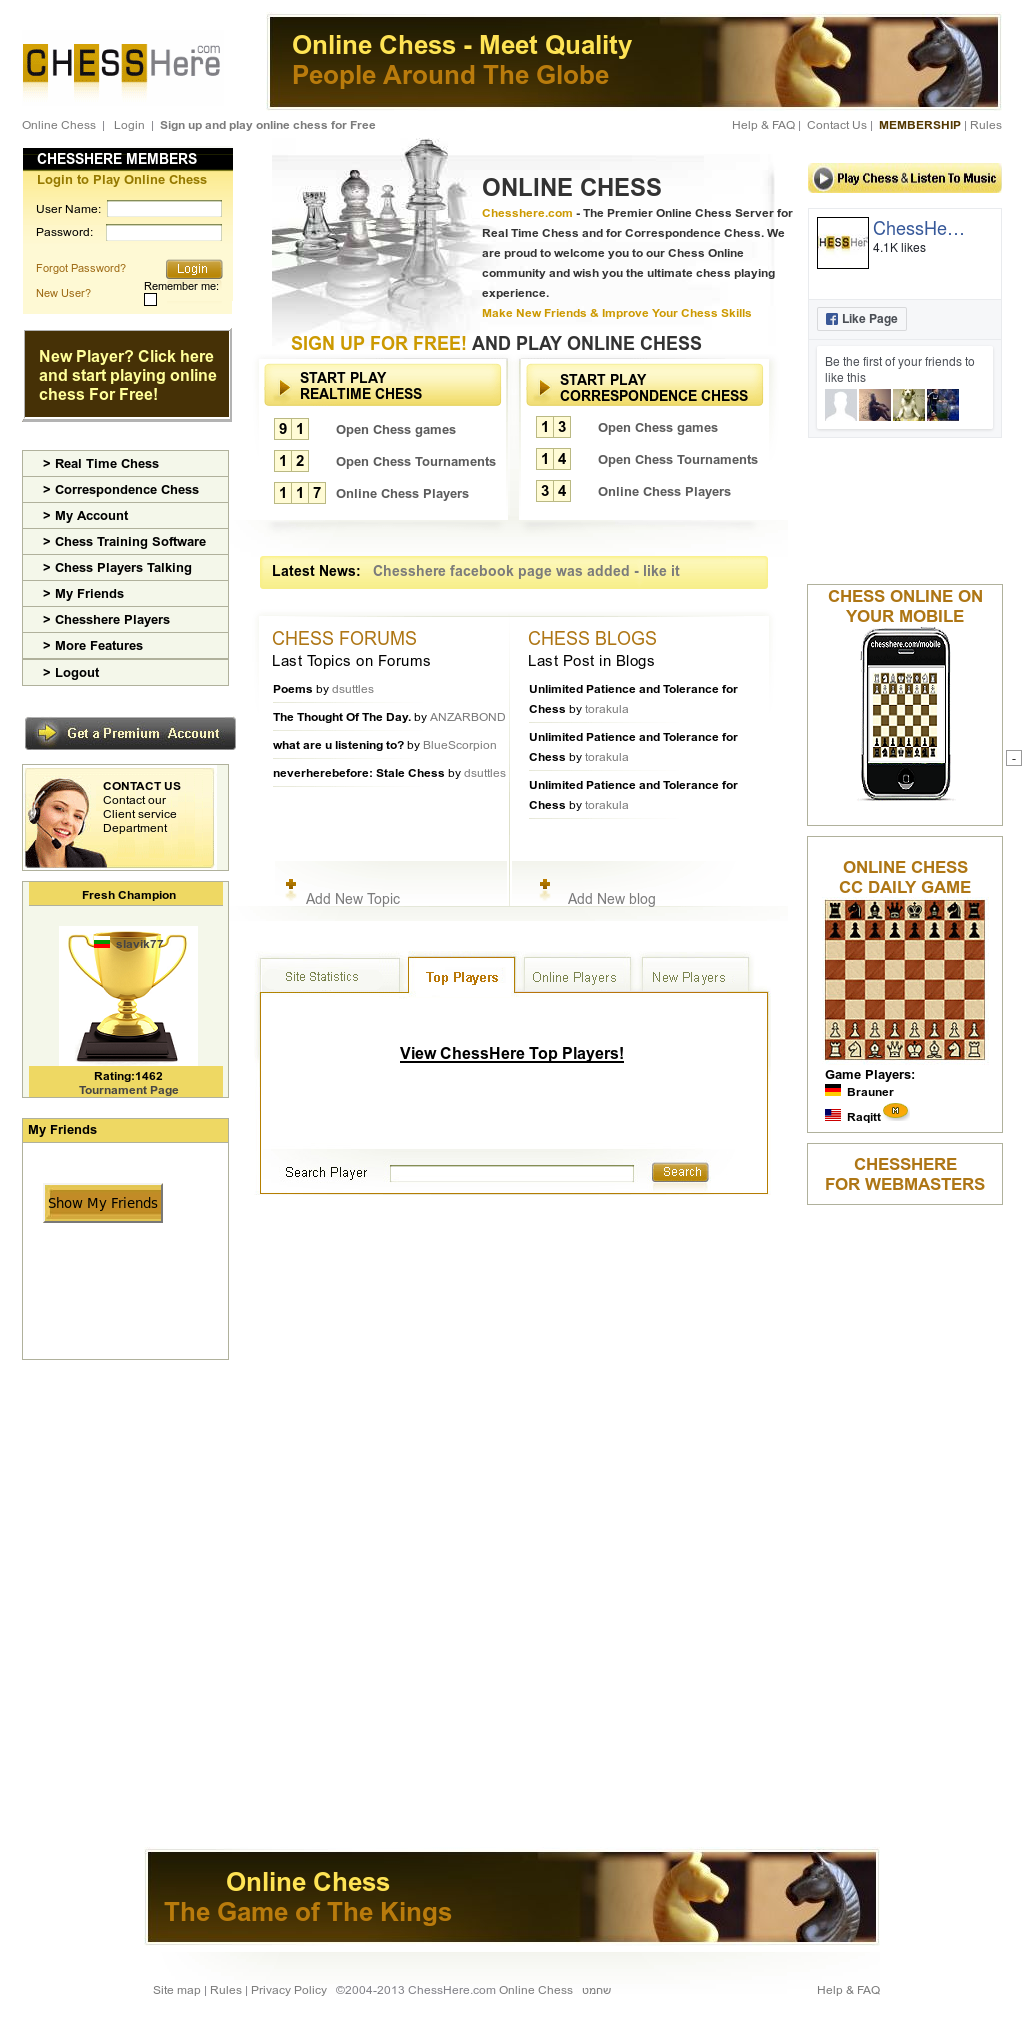 Chesshere Competitors, Revenue and Employees - Owler Company